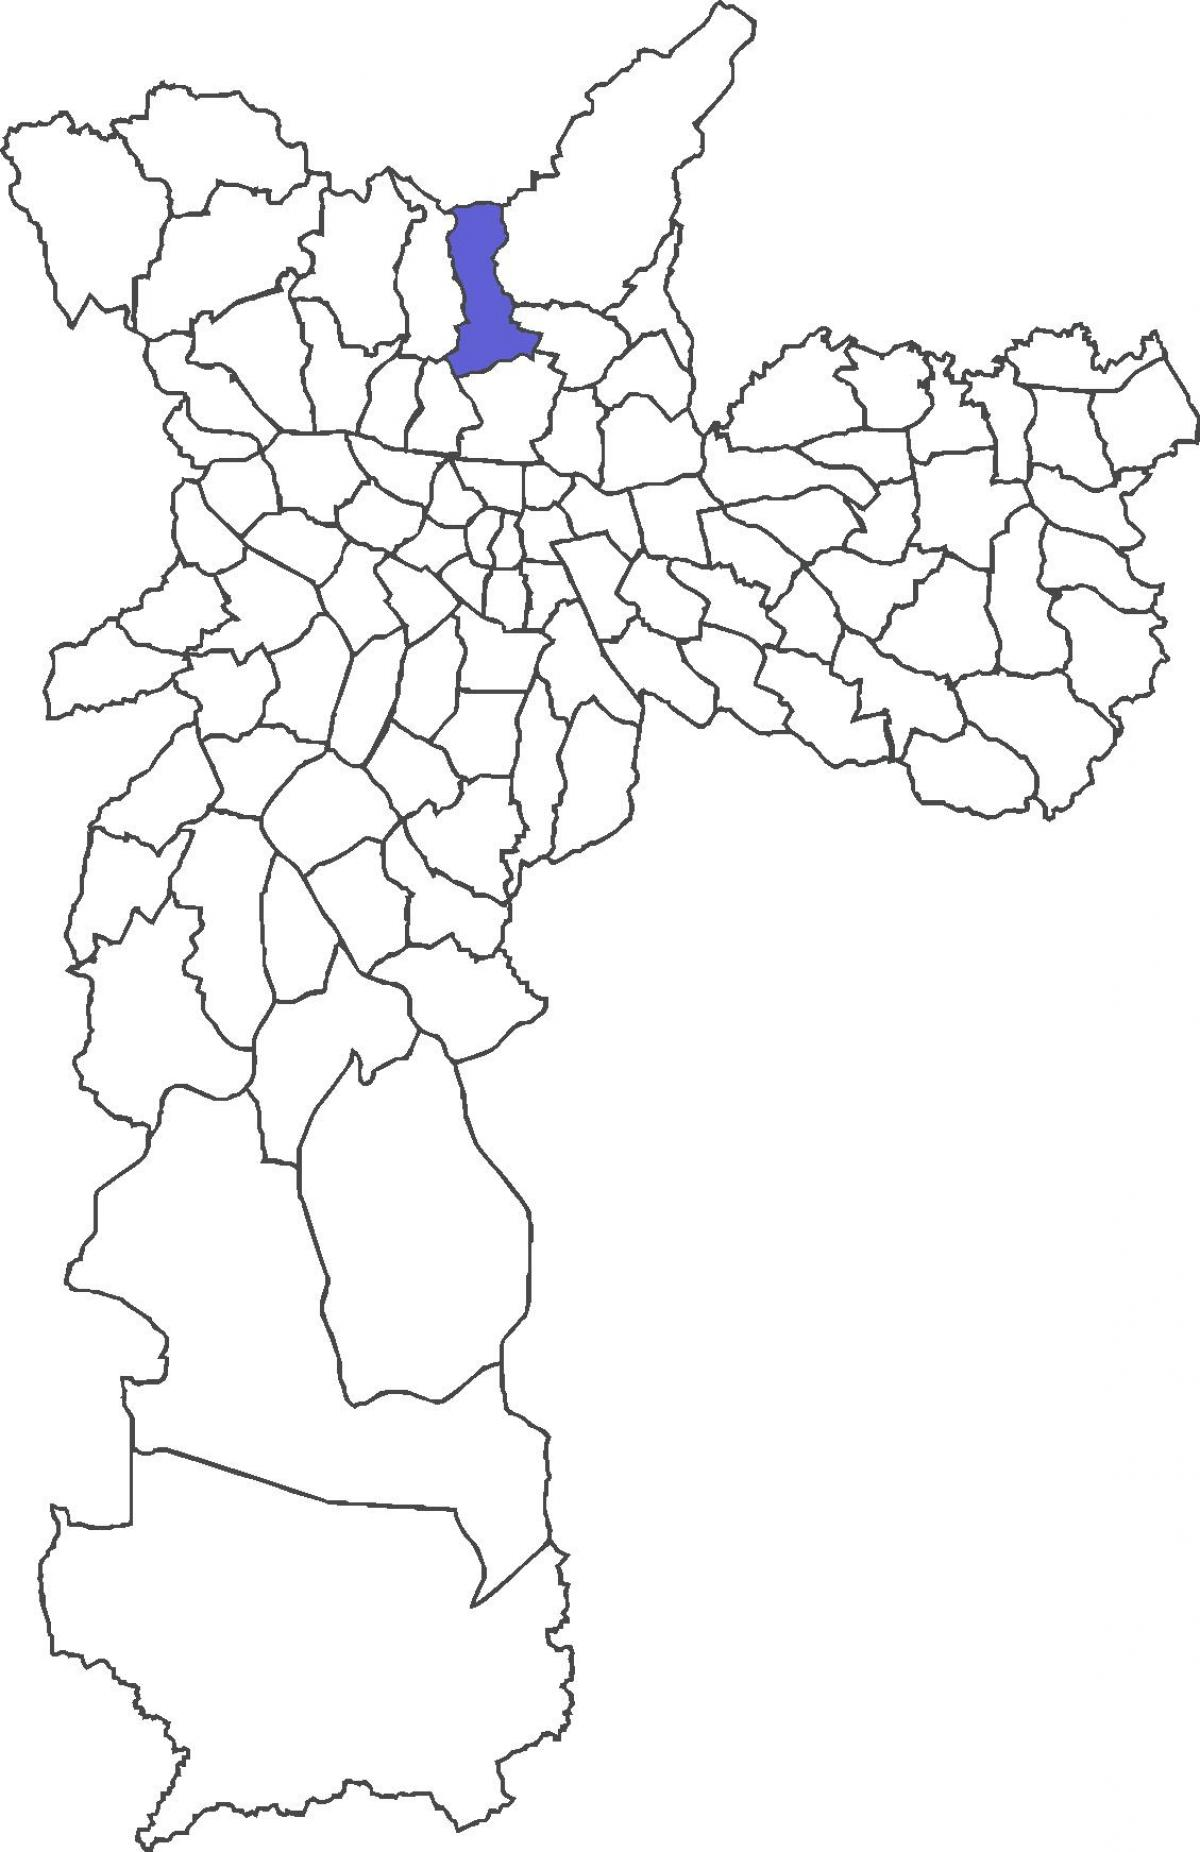 Kartta Mandaqui district